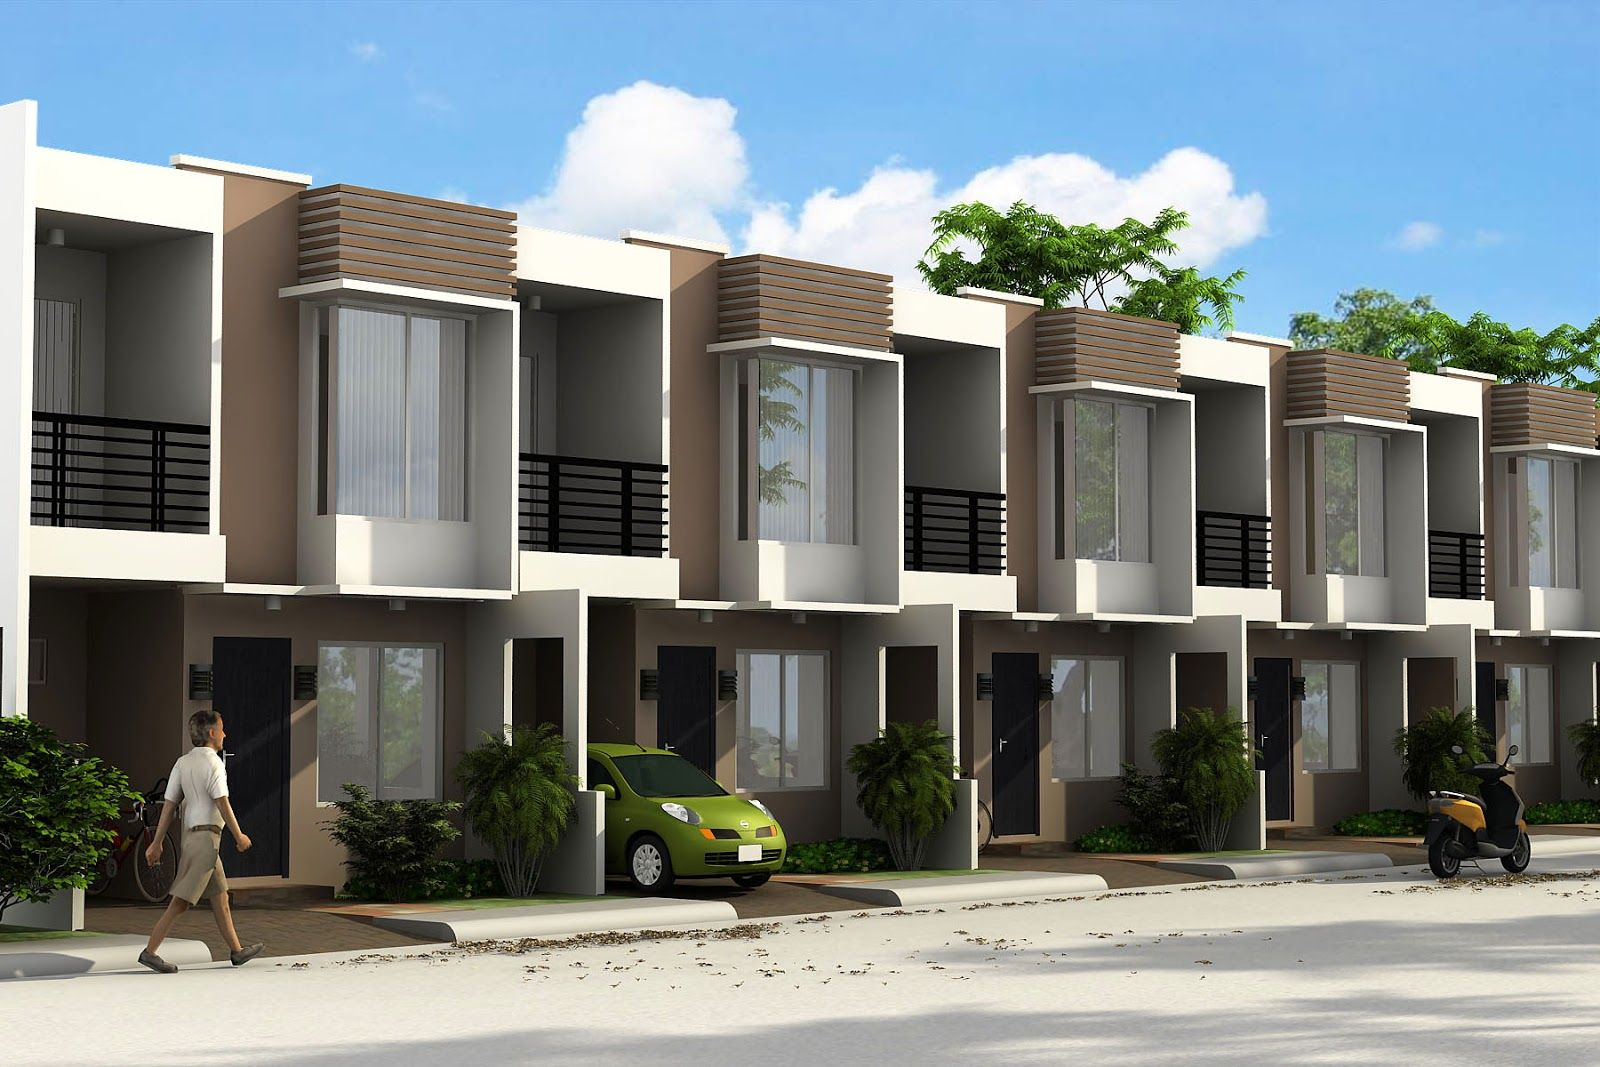 Philippines townhouse design google search house and for Townhouse design